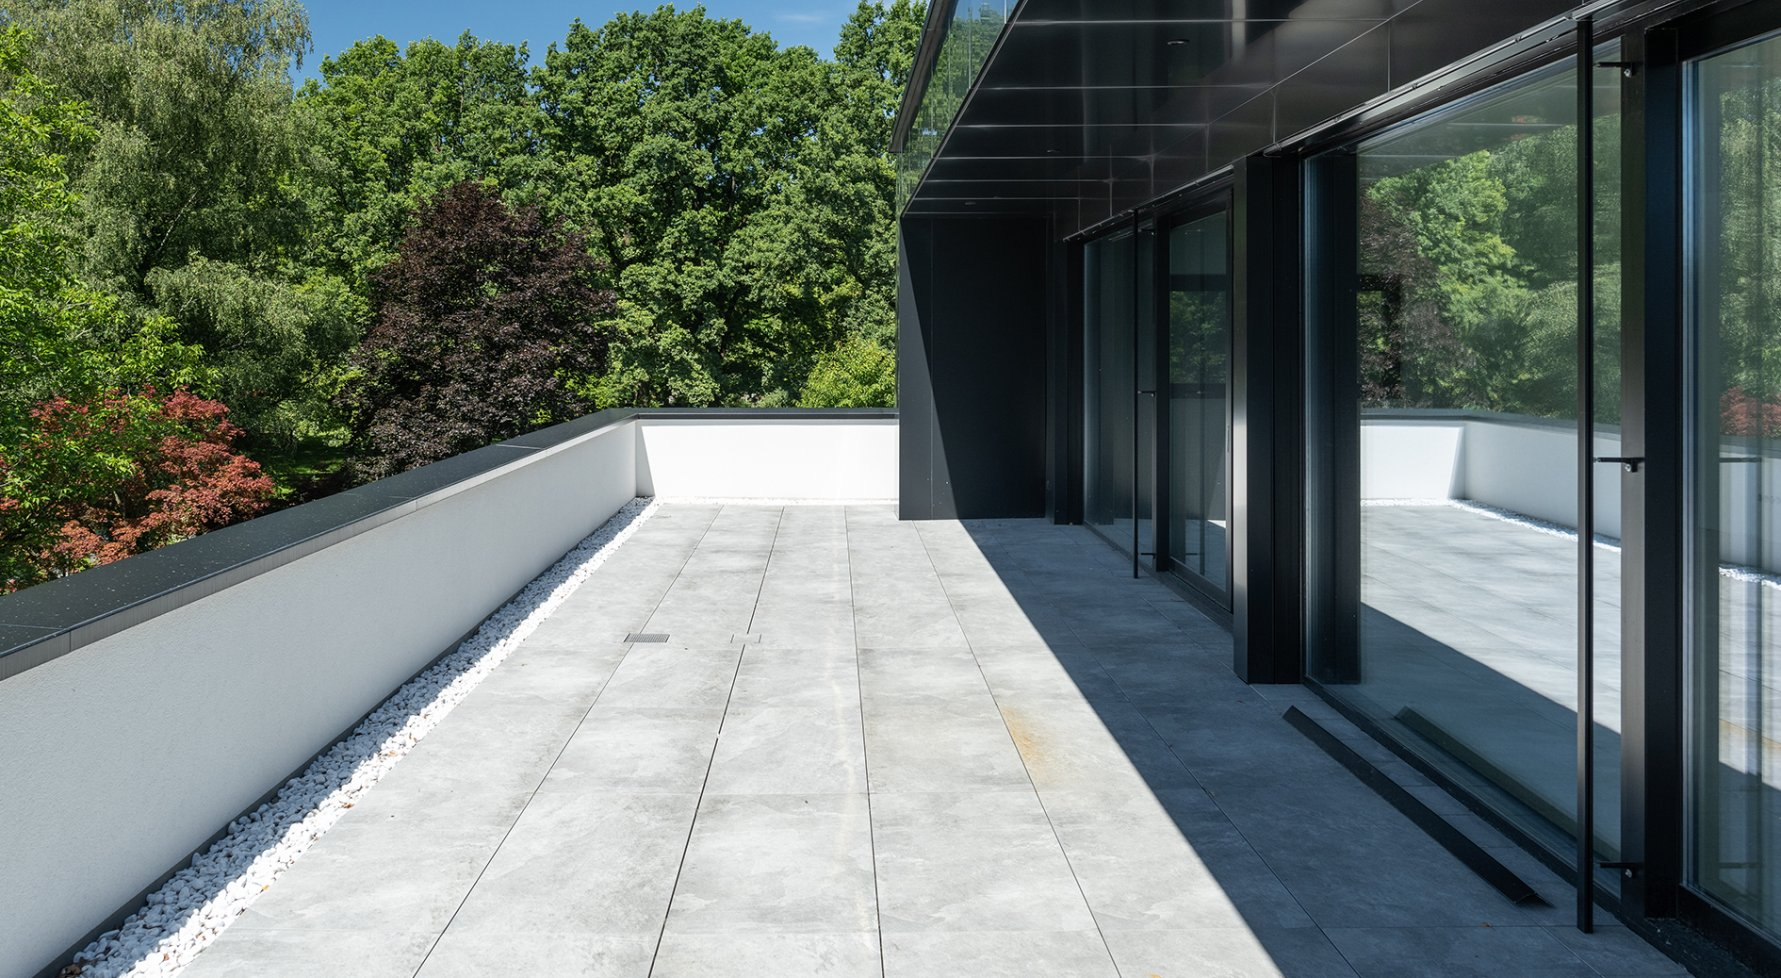 Property in 5020 Stadt Salzburg - Best location Morzg: Open living concept with views! Roof terrace apartment for first-time occupancy - picture 1